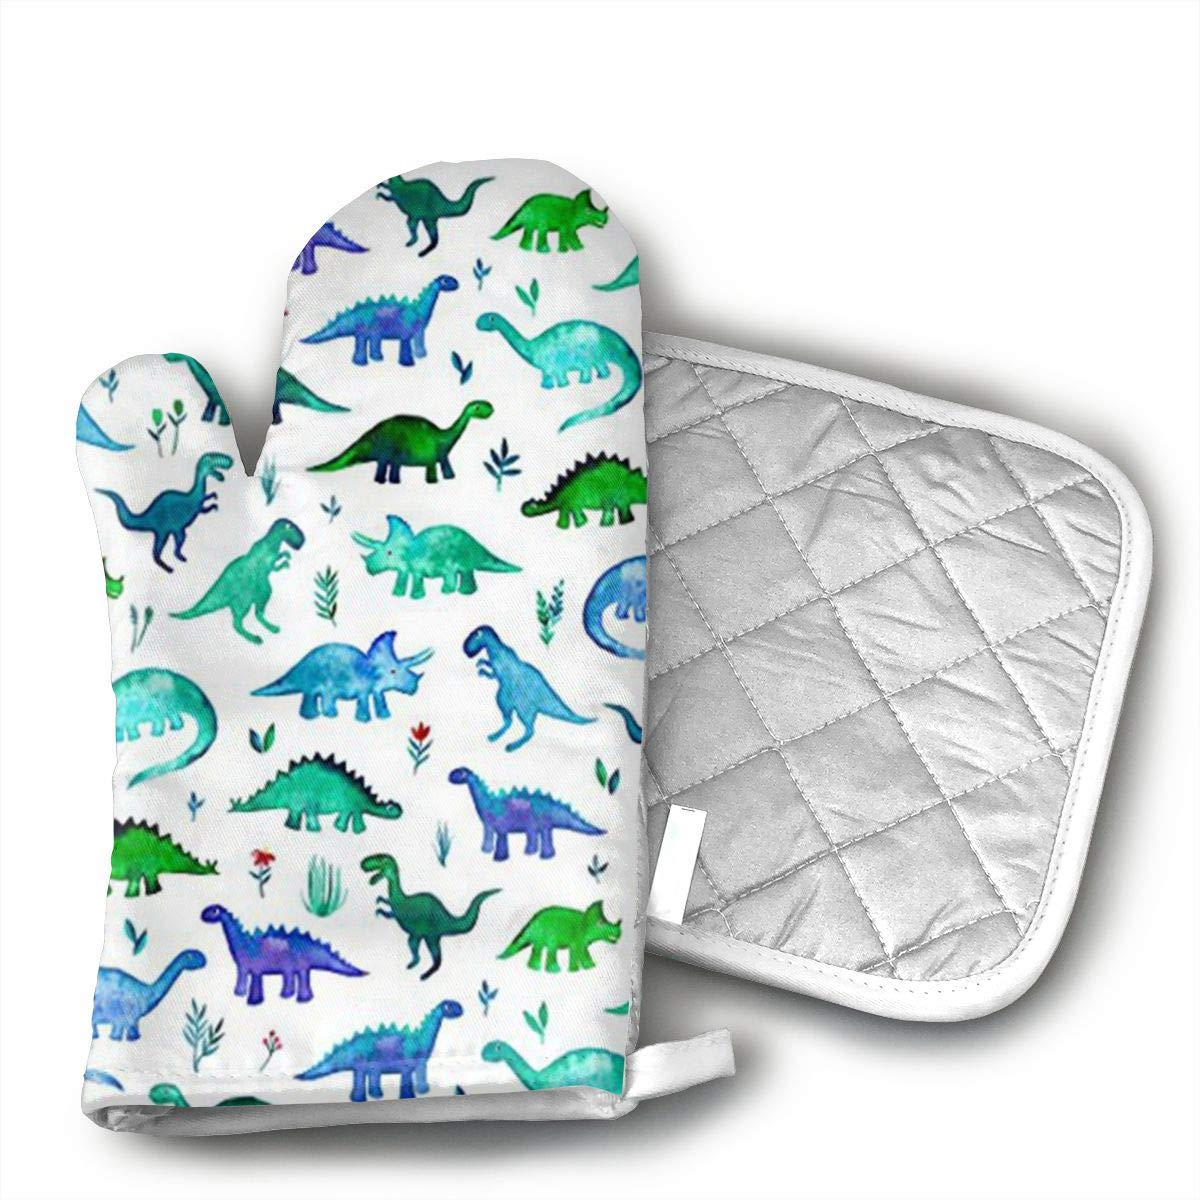 HGUIDHG Dinosaurs Fabric Tiny Dinos in Blue and Green Oven Mitts+Insulated Square Mat,Heat Resistant Kitchen Gloves Soft Insulated Deep Pockets, Non-Slip Handles